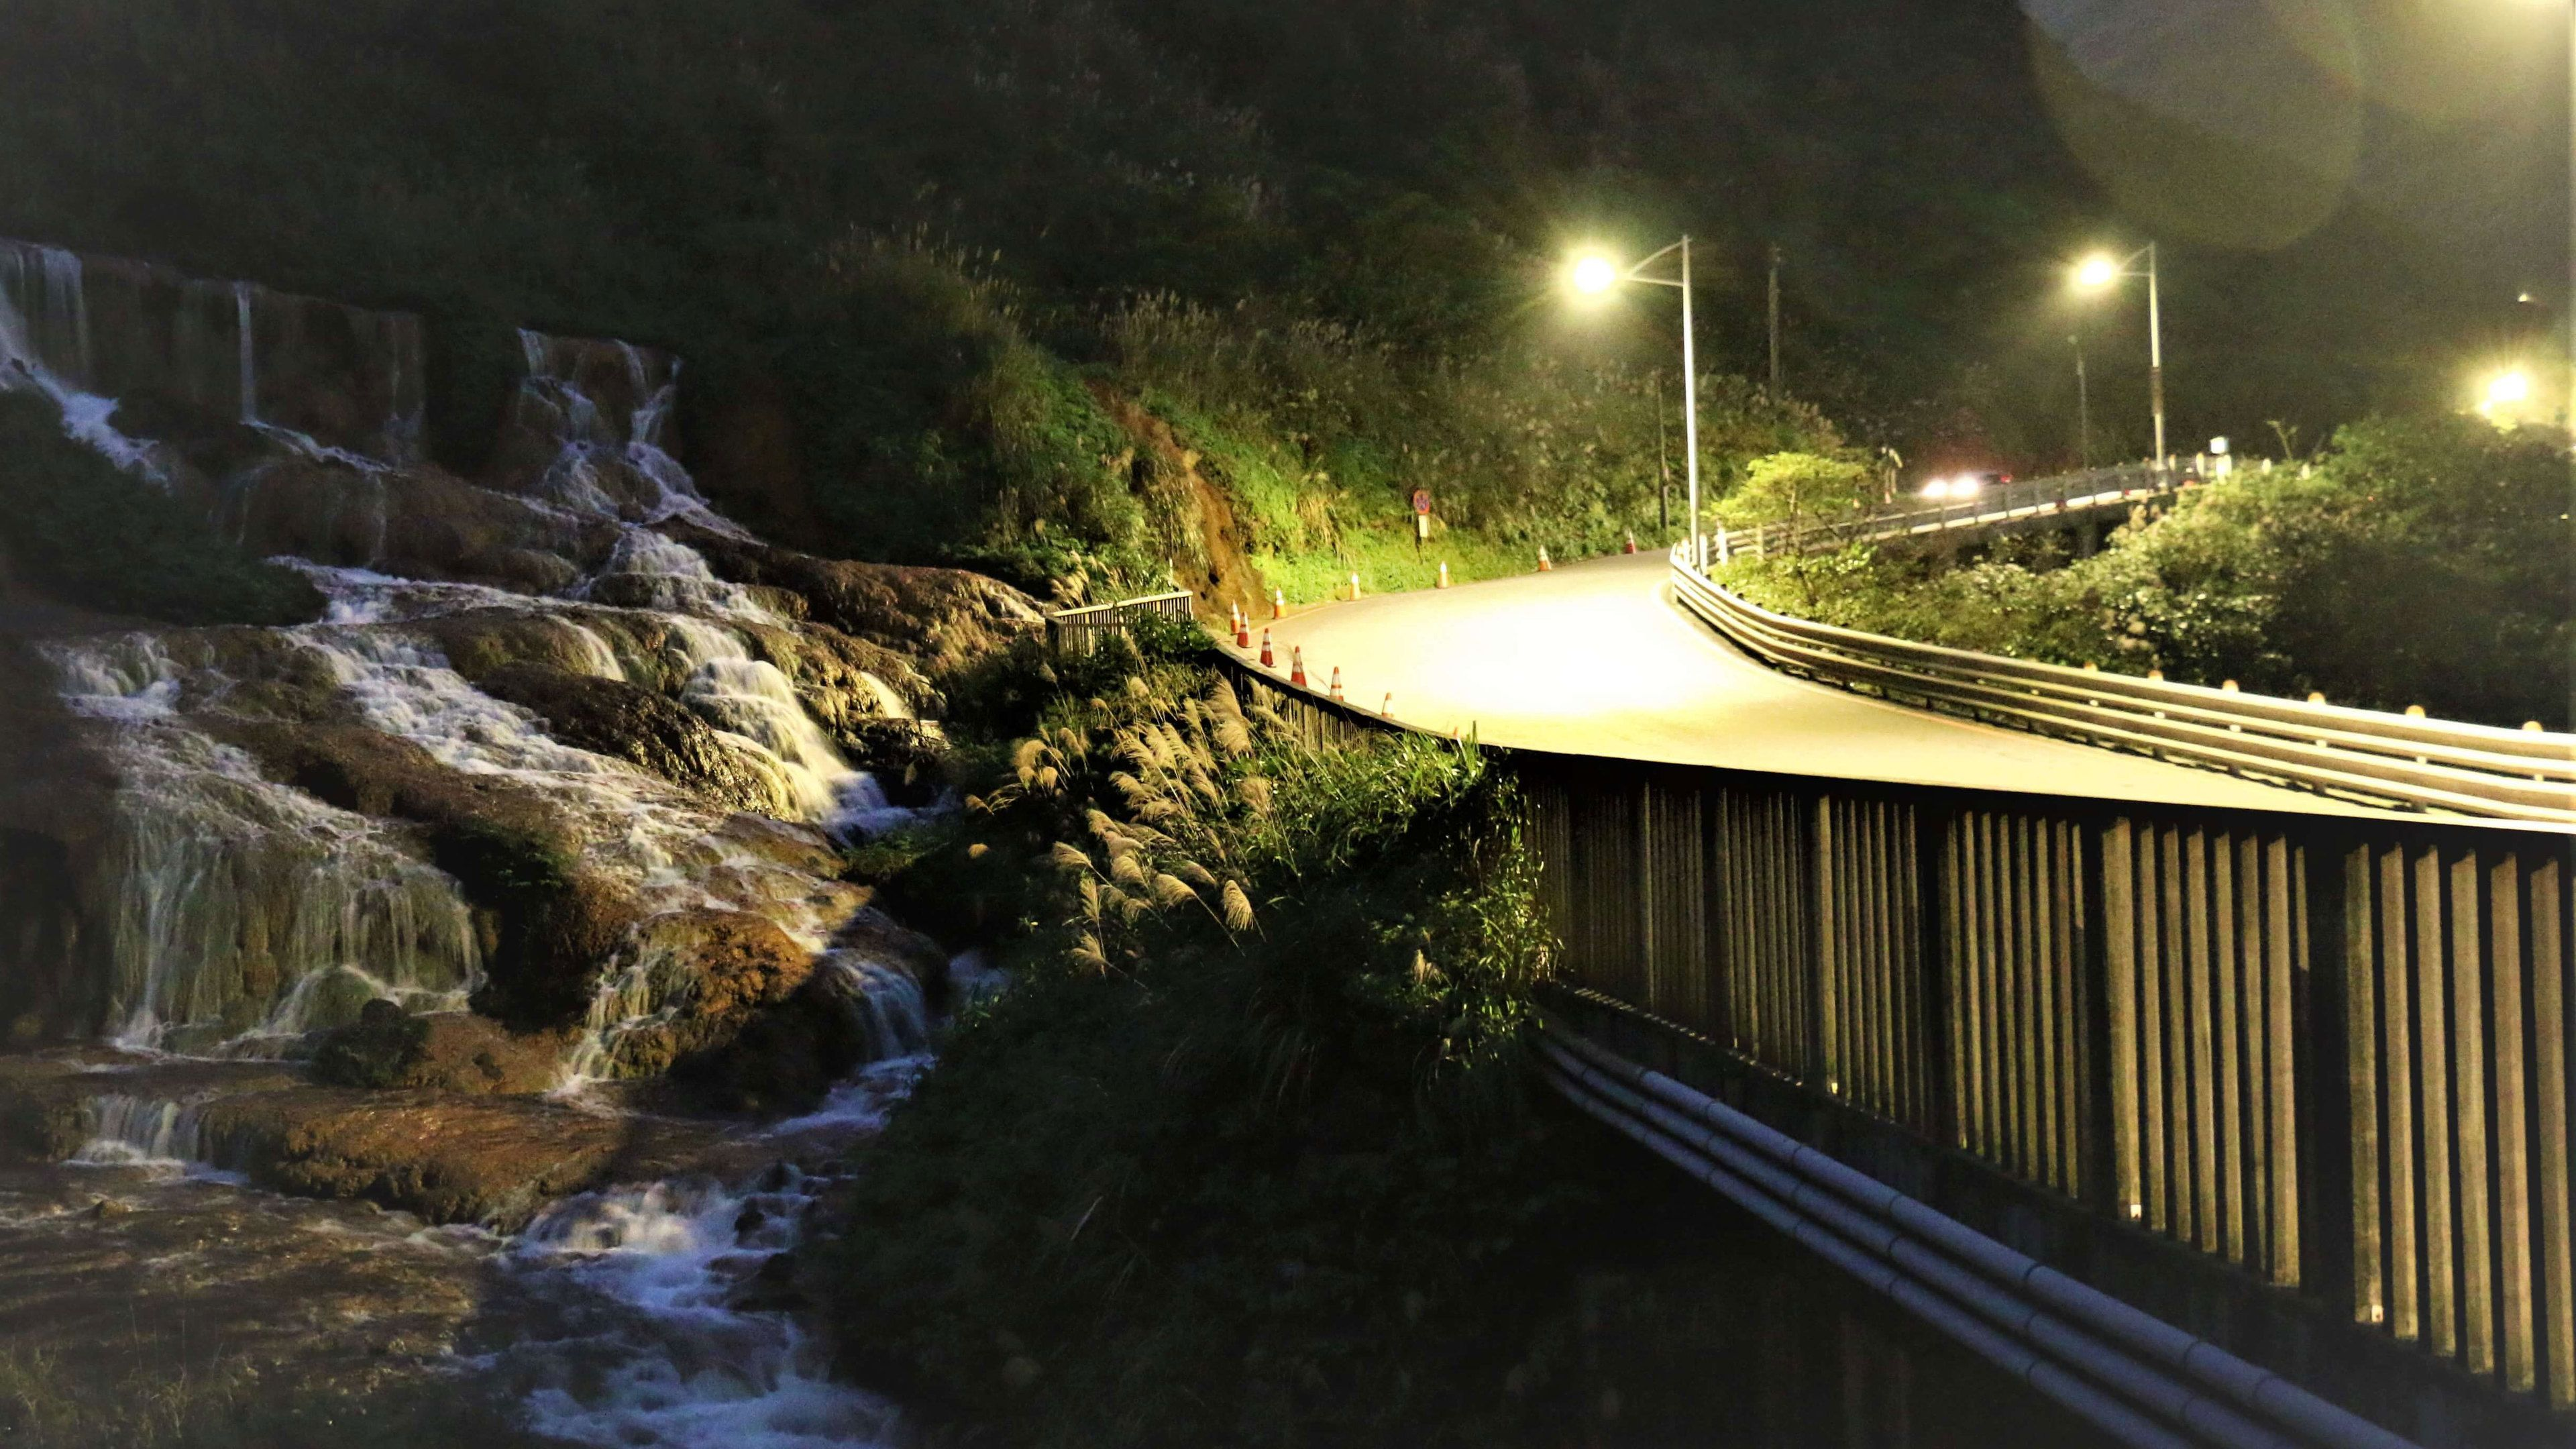 Road skirting past water fall in Jiufen